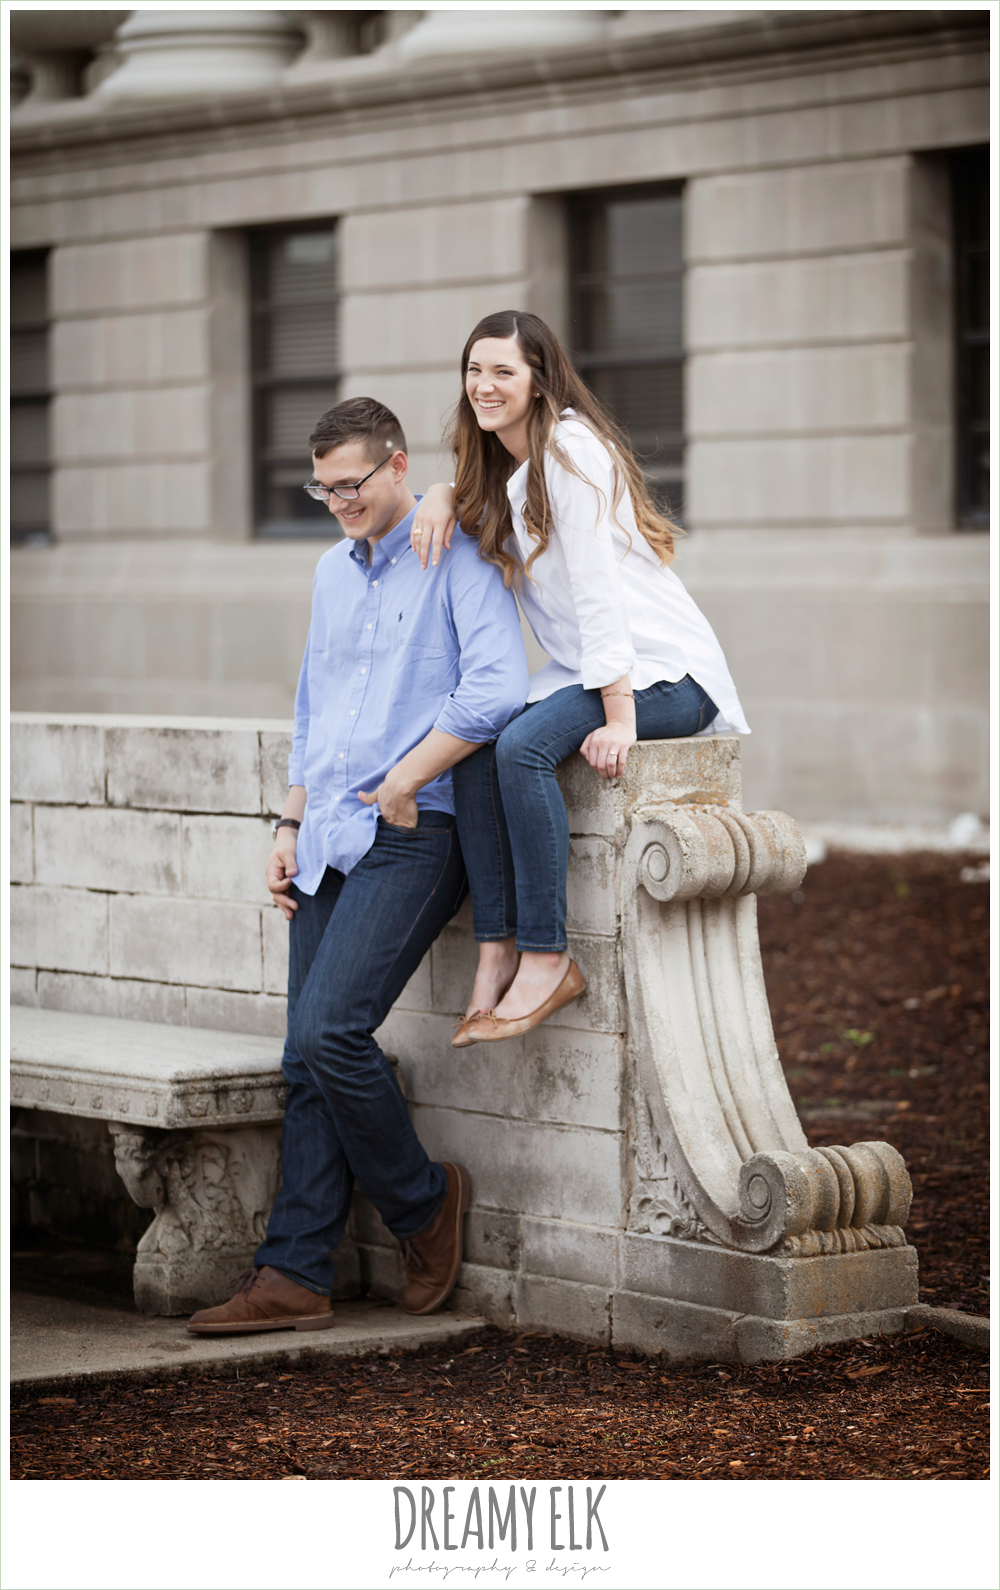 administration building, texas a&m campus engagement photo, college station, texas {dreamy elk photography and design}